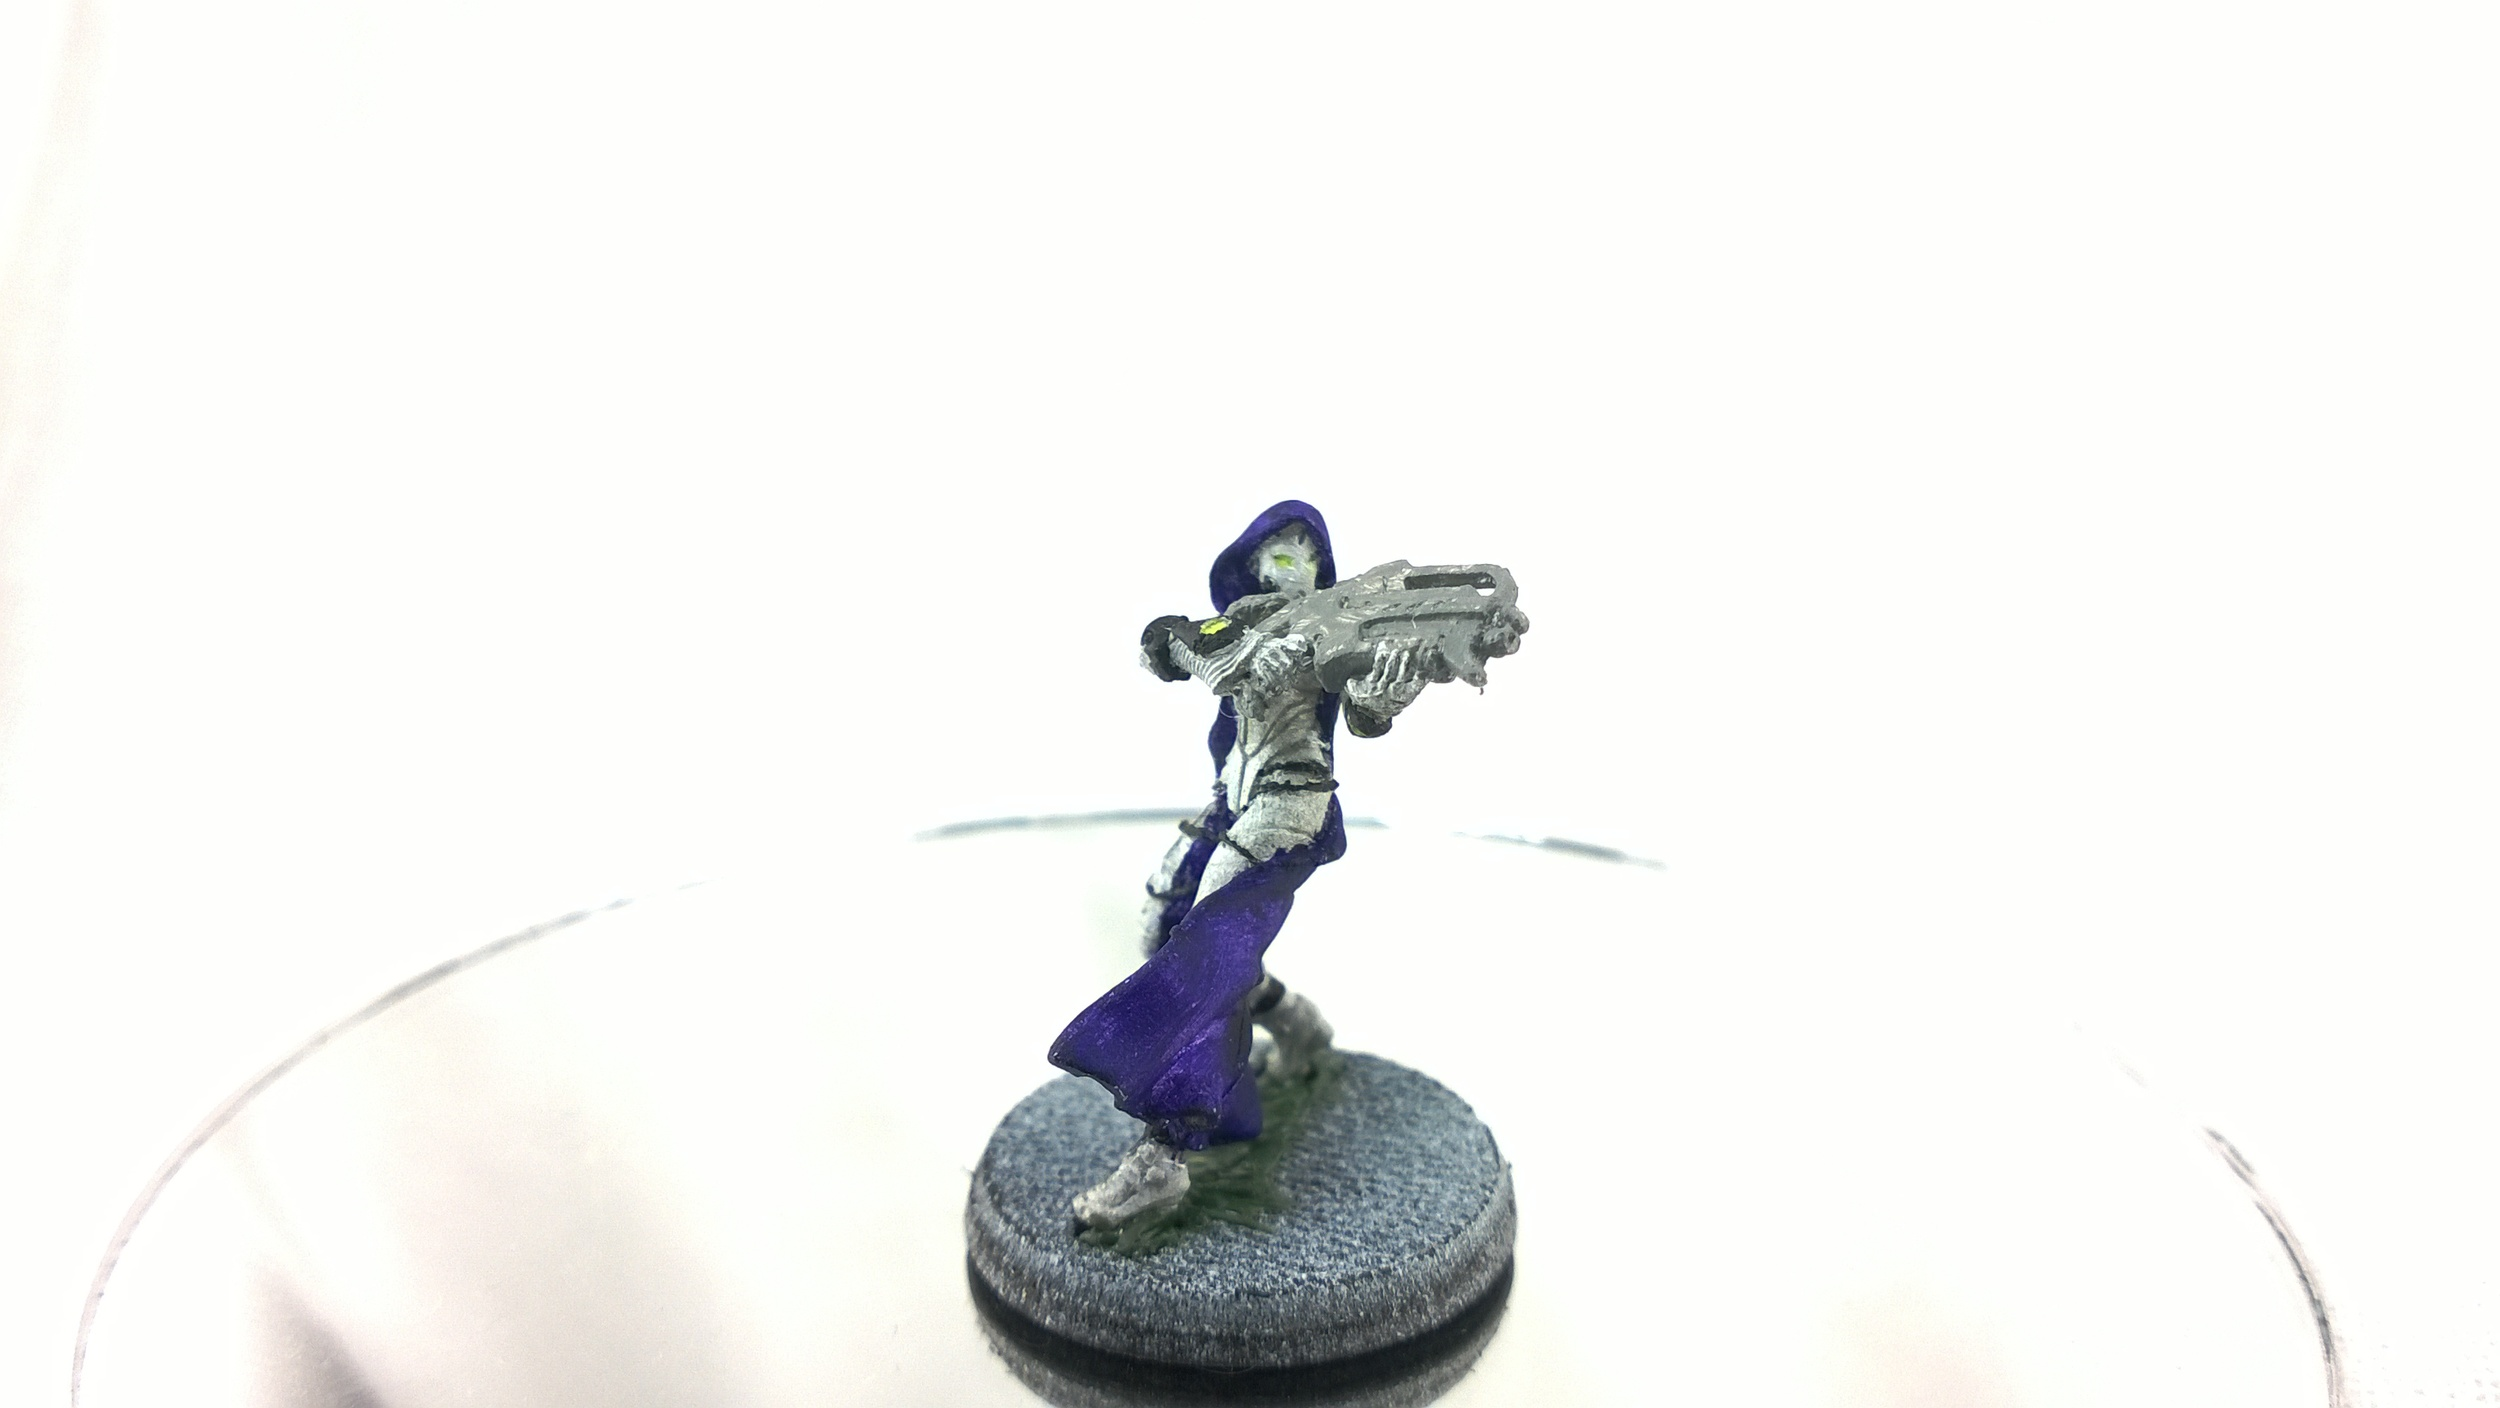 Reverend Custodier